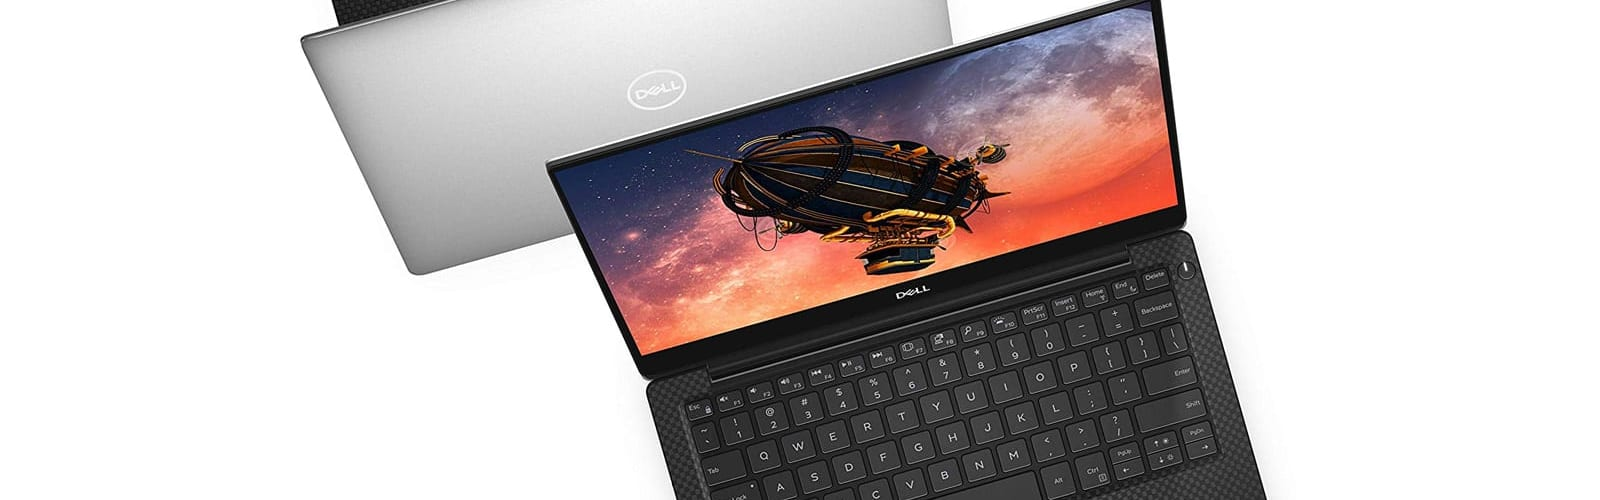 Dell's top-of-the-line XPS 13 from 2019 is $400 off at Amazon